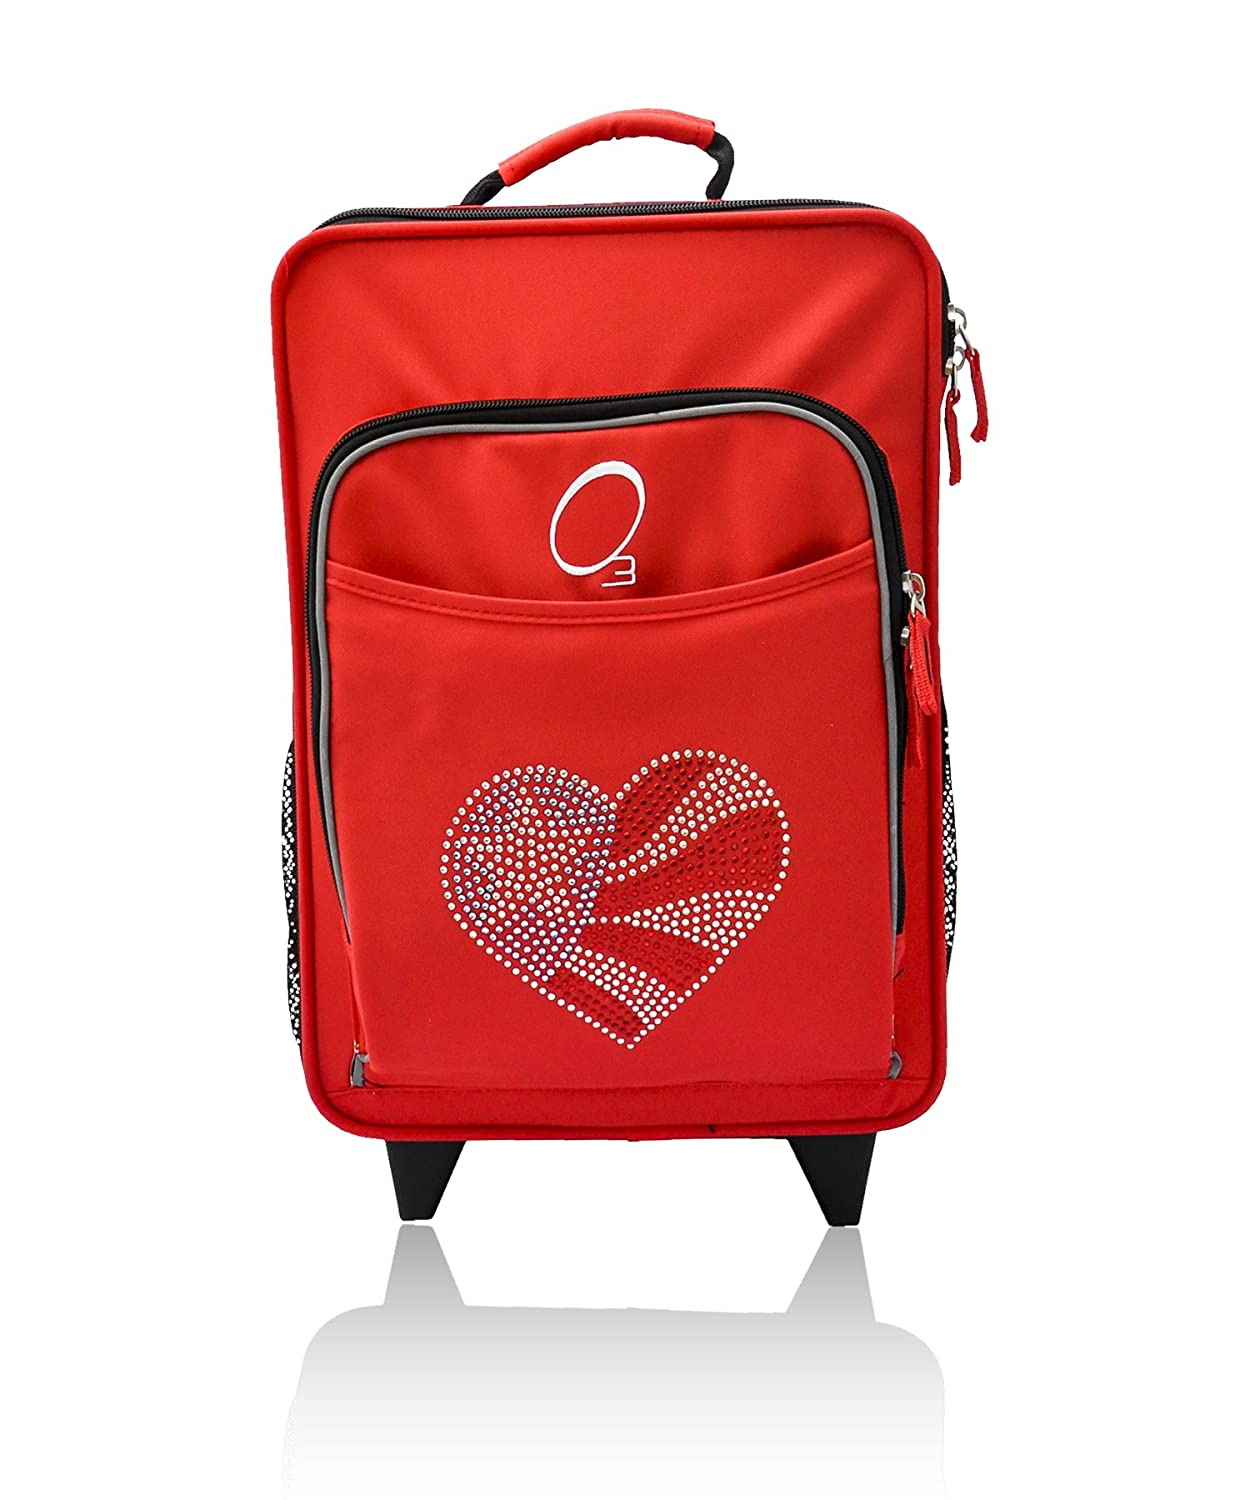 Top 11 Best Luggage For Kids (2020 Reviews & Buying Guide) 4